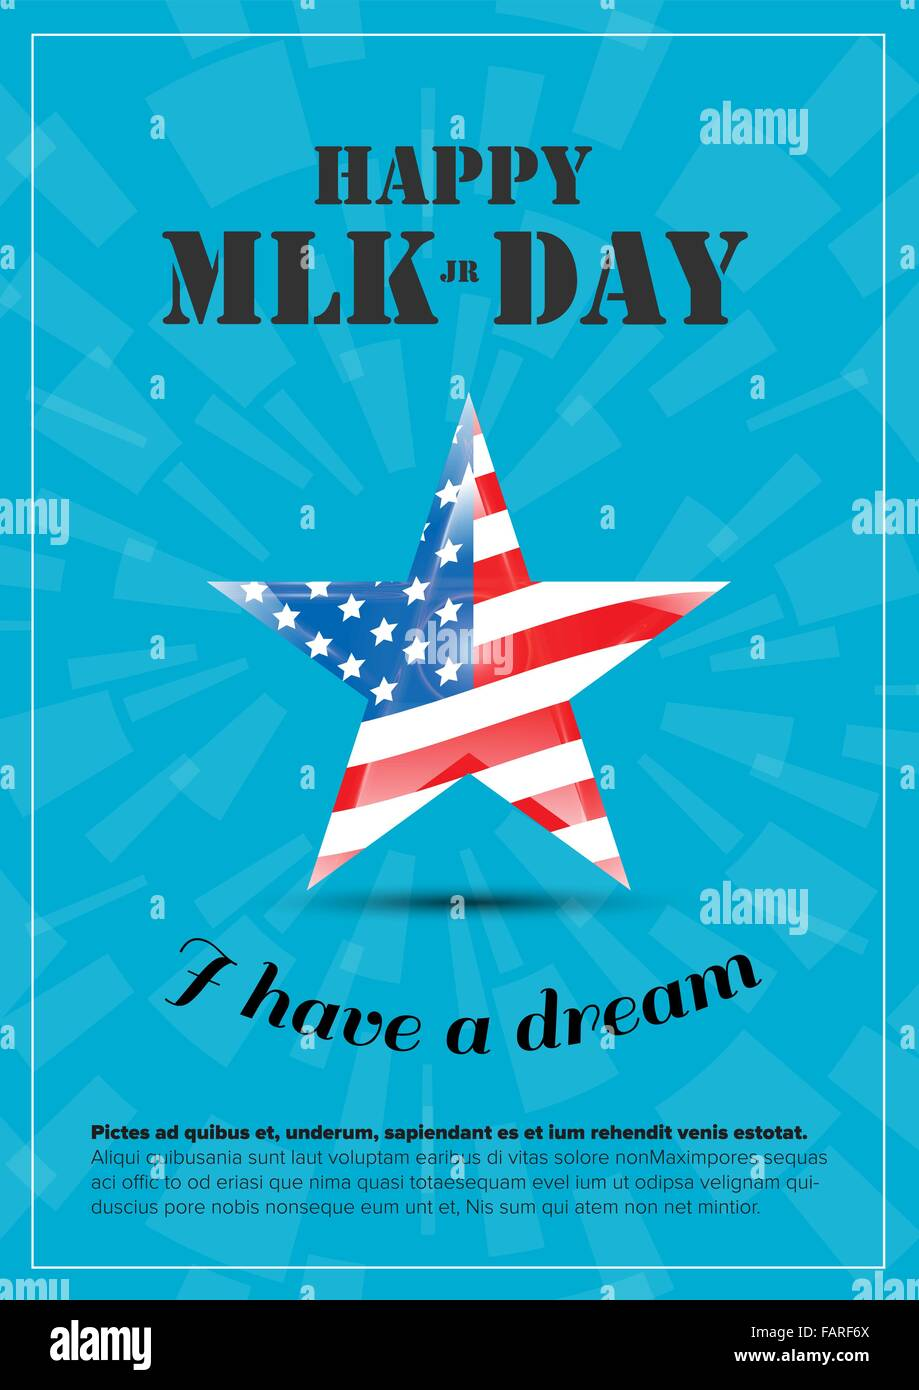 Vector Happy Martin Luther King Day Poster With Usa Flag Stock